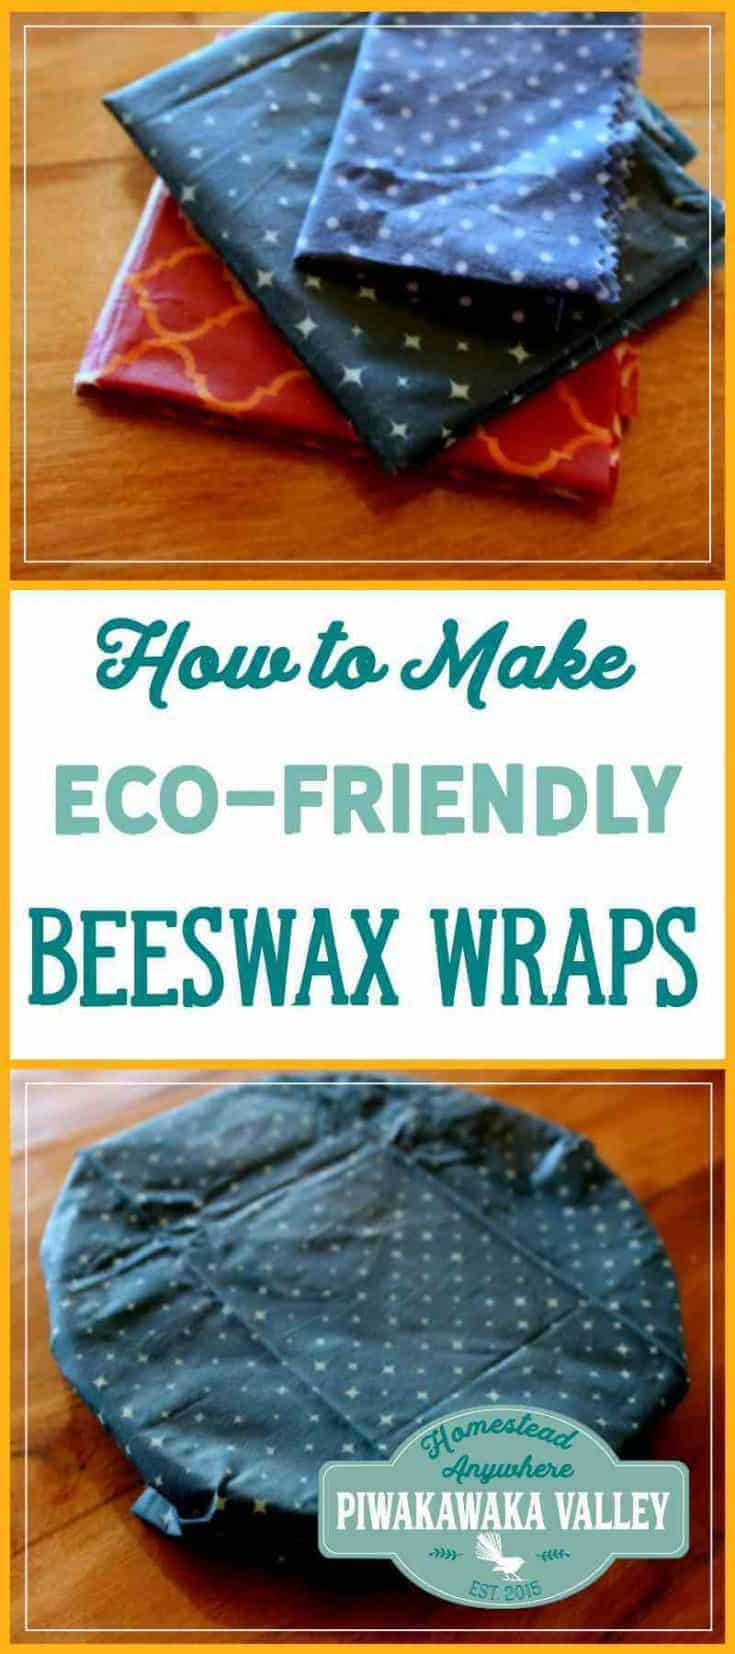 Make your own beeswax wraps as an eco-friendly alternative to clingfilm or plastic wrap. This recipe uses jojoba oil and beeswax to make a nice clingy wrap. how to make beeswax wraps, diy, make at home, zero waste kitchen